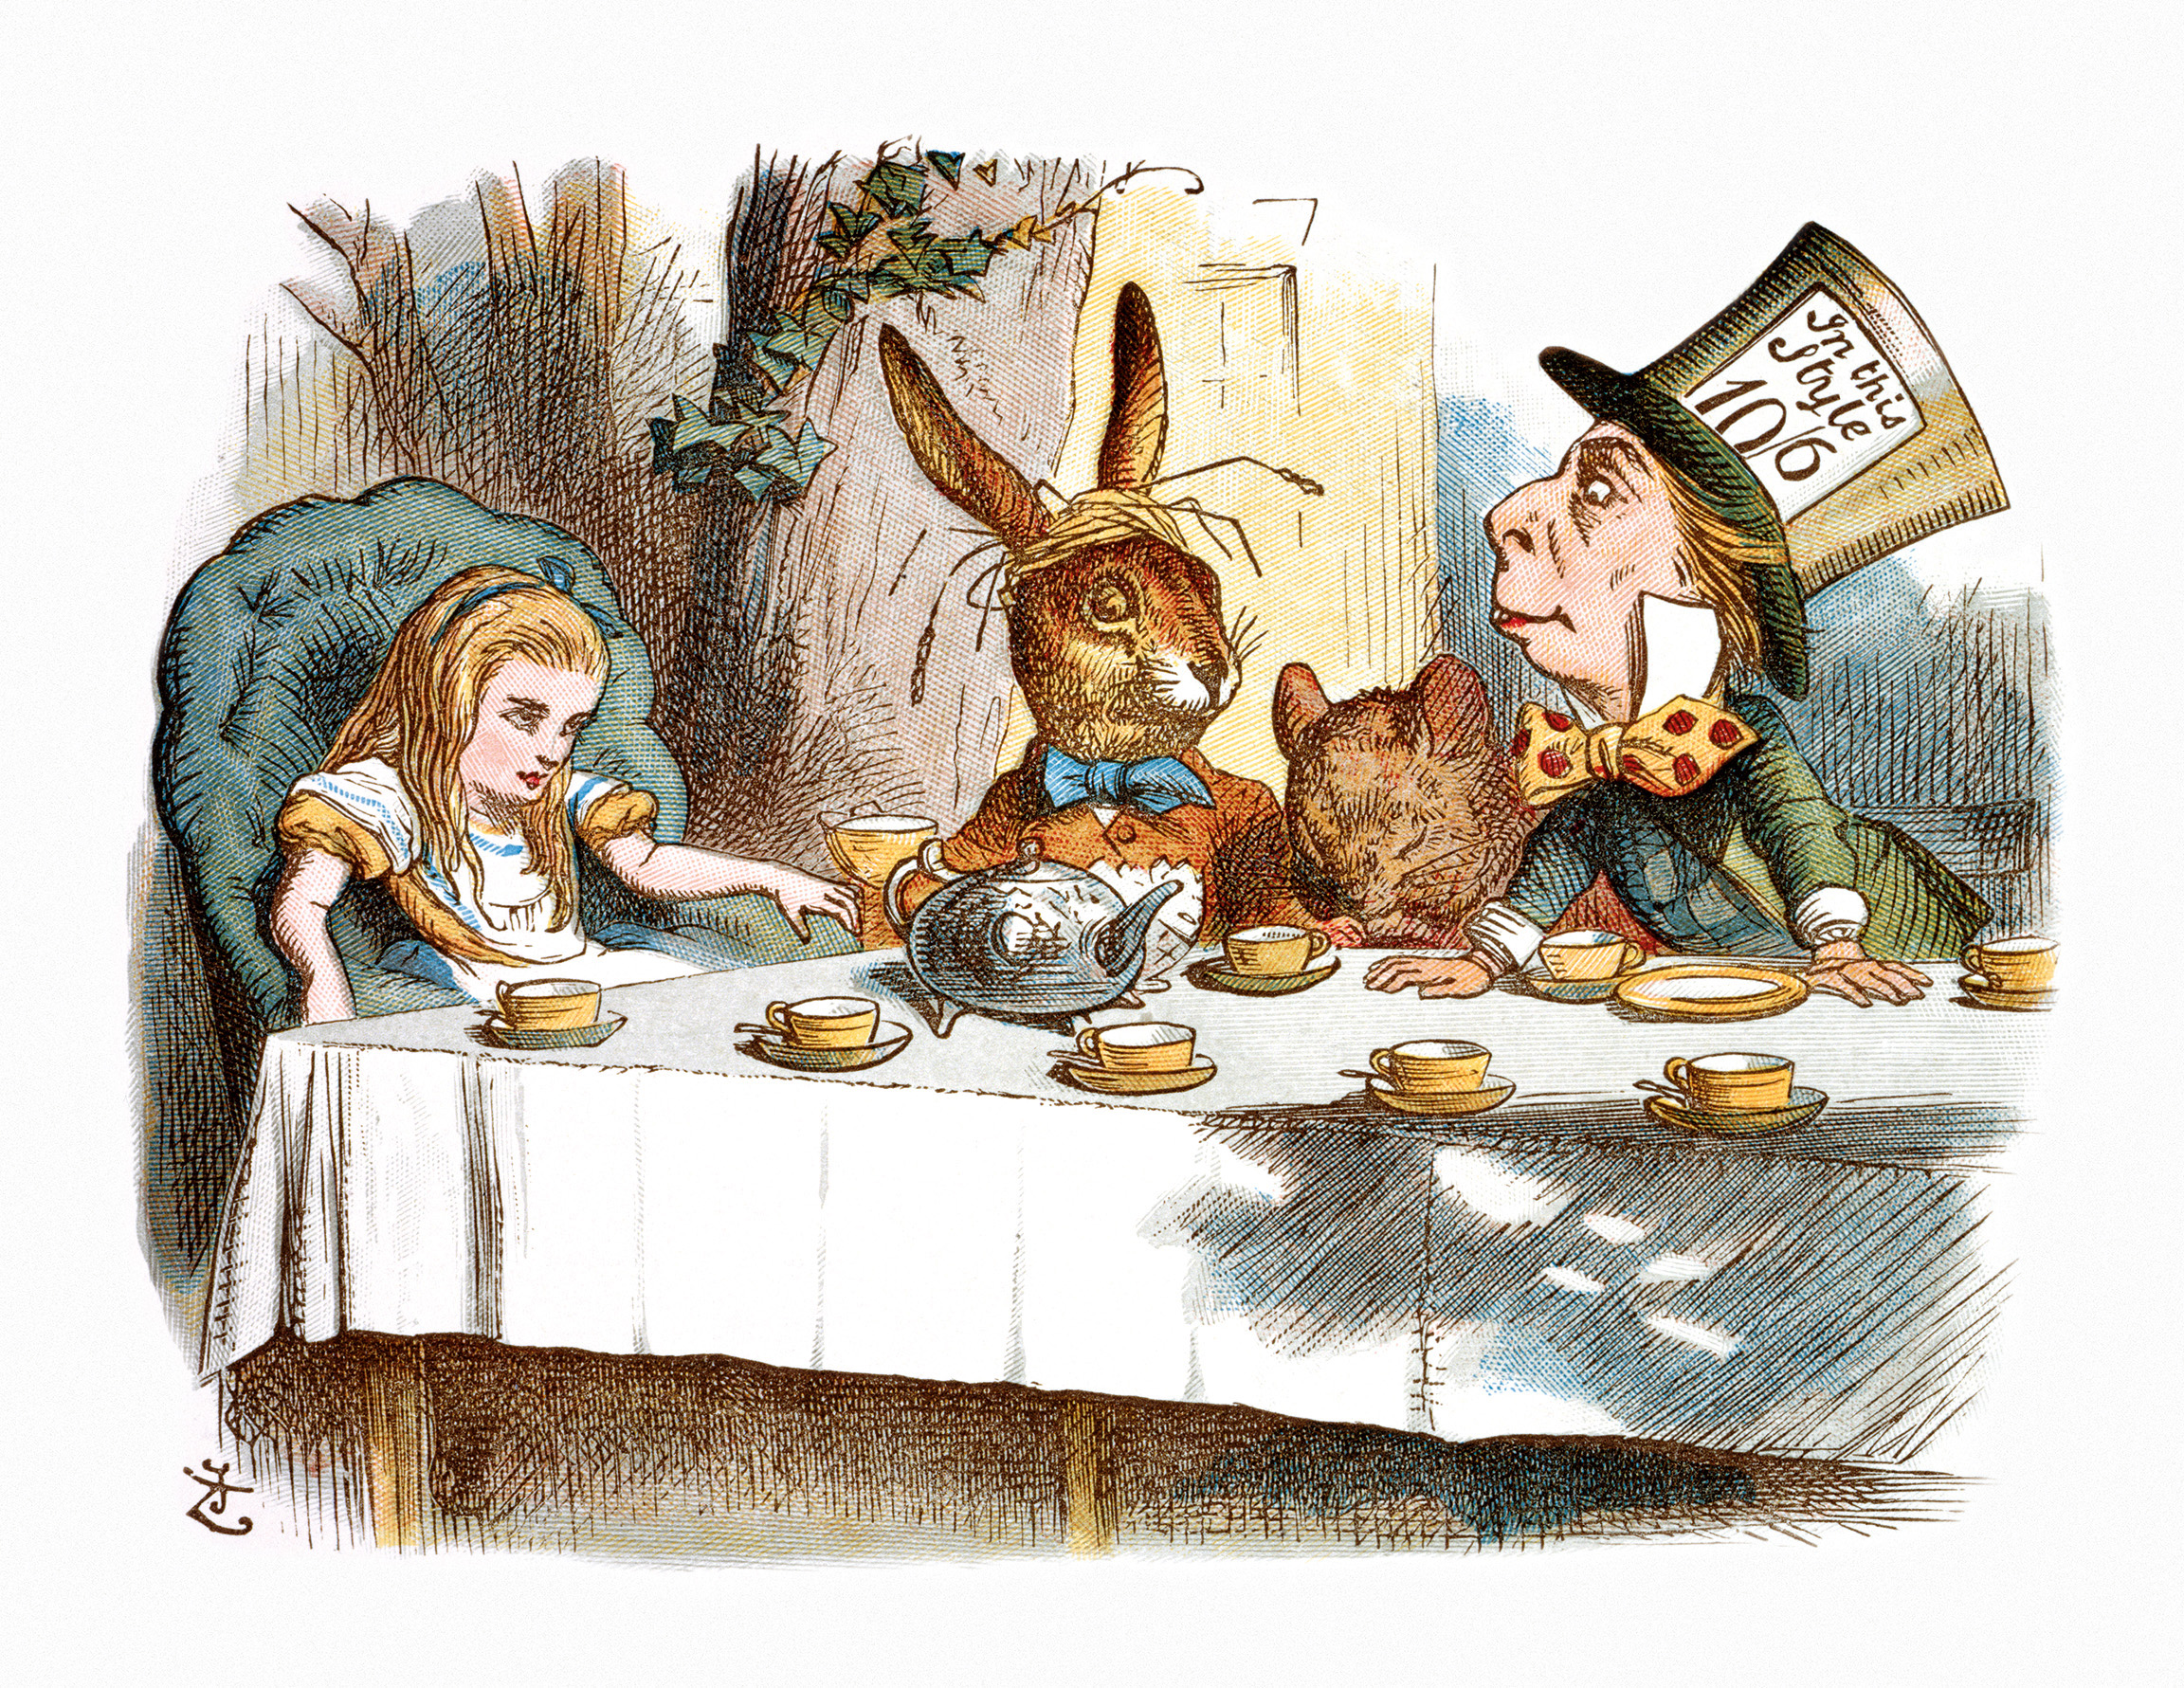 The Mad Hatter's Tea Party II